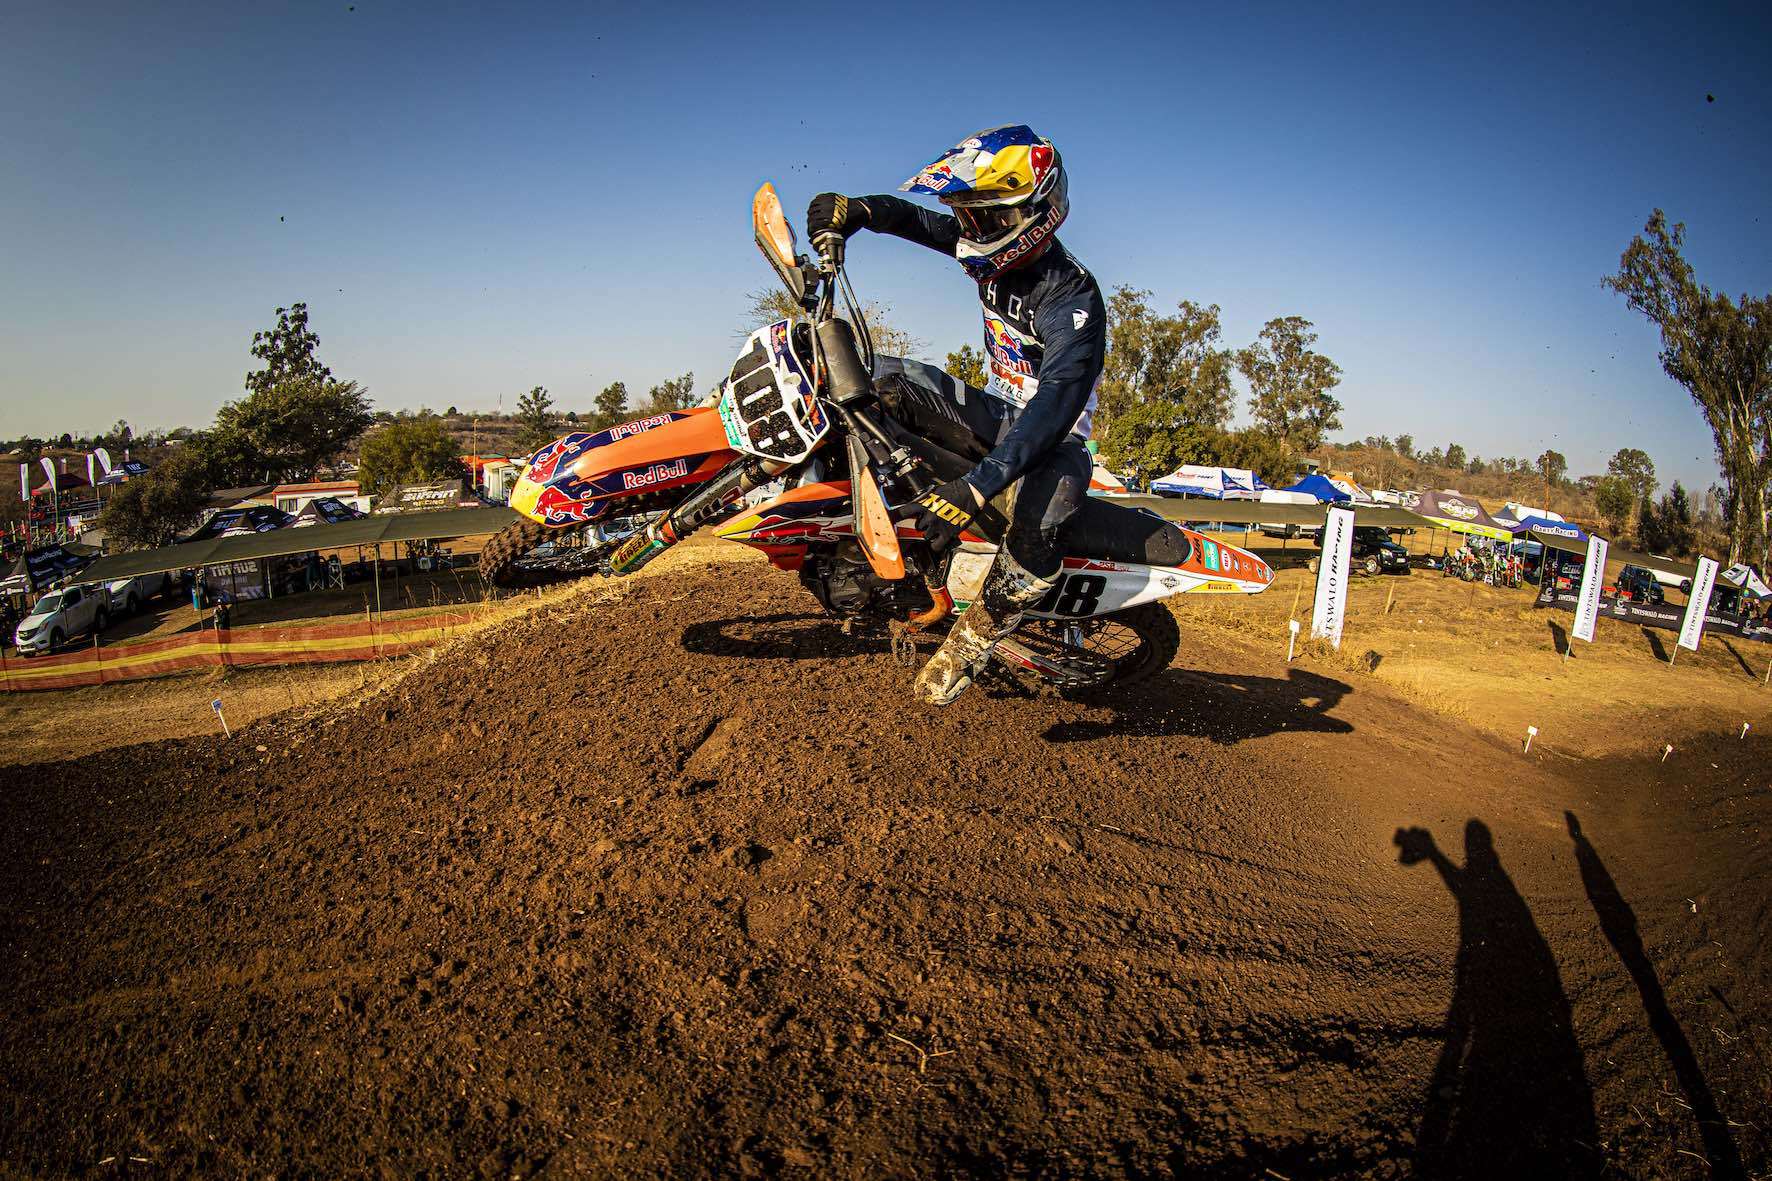 Kerim Fitz-Gerald racing in the 2019 South African National Motocross Championship in Pietermaritzburg